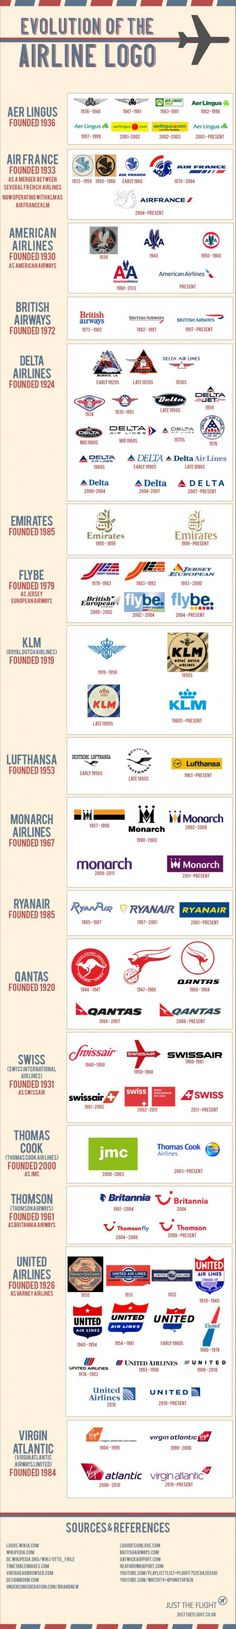 Evolution of logos and trademarks of airlines companies Evolução dos logos e marcas de companhias aéreas